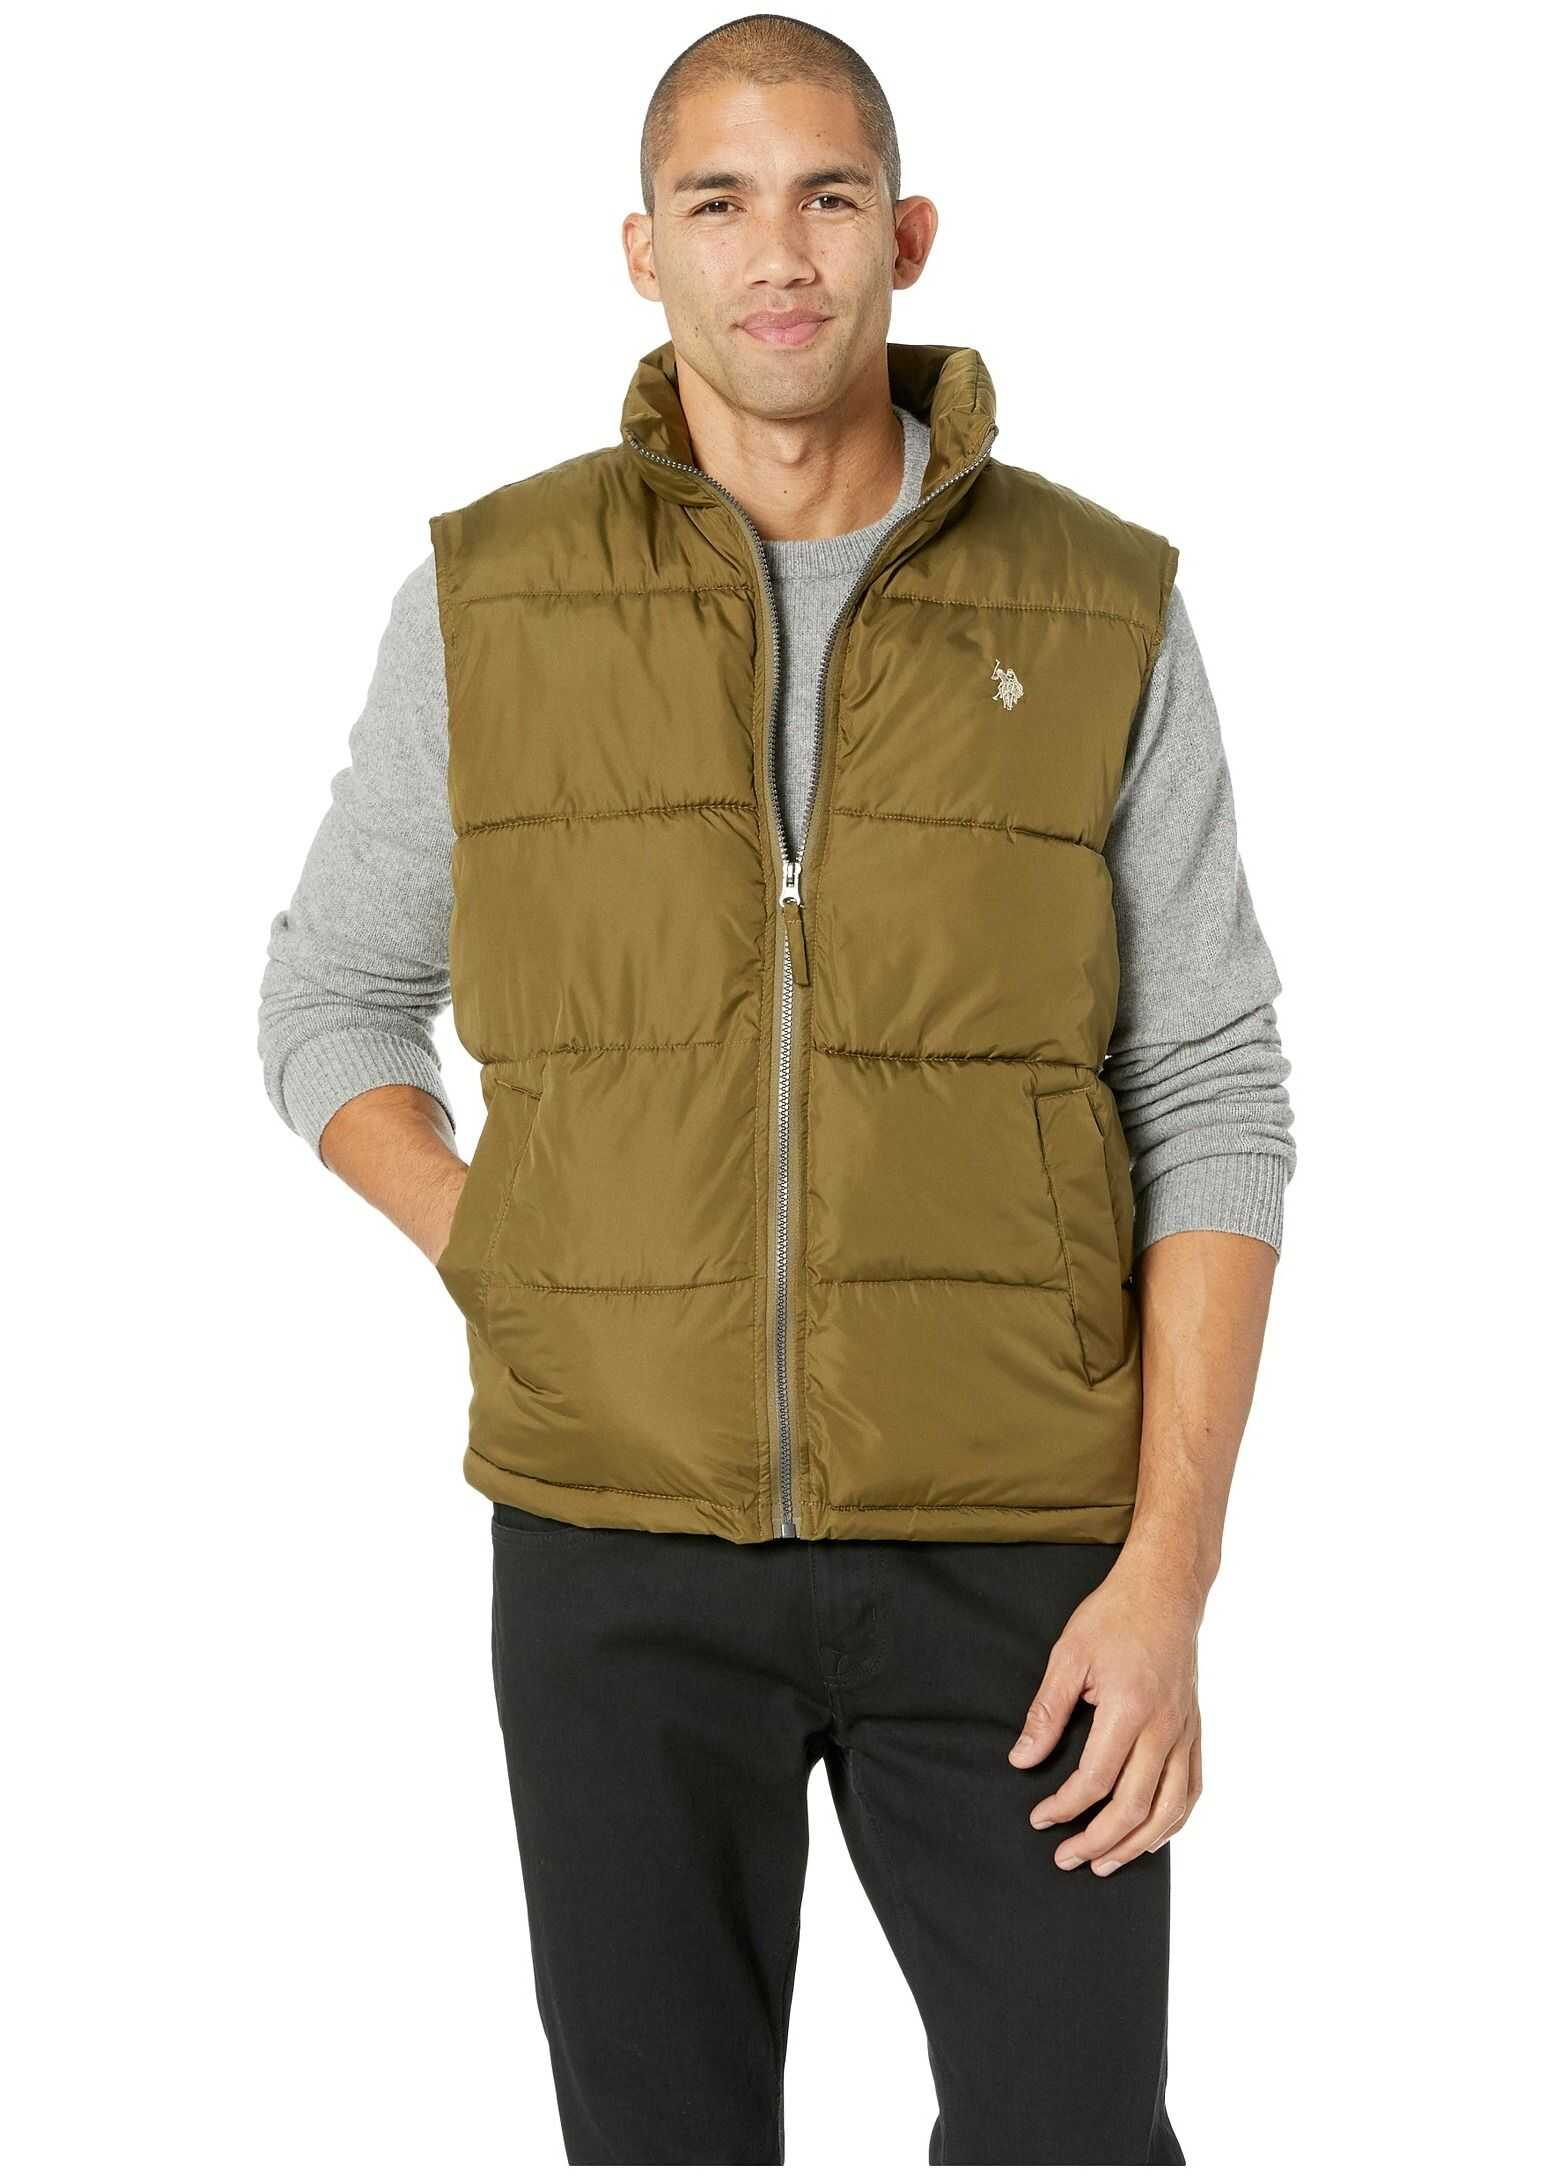 U.S. POLO ASSN. Basic Vest Small Horse Army Green